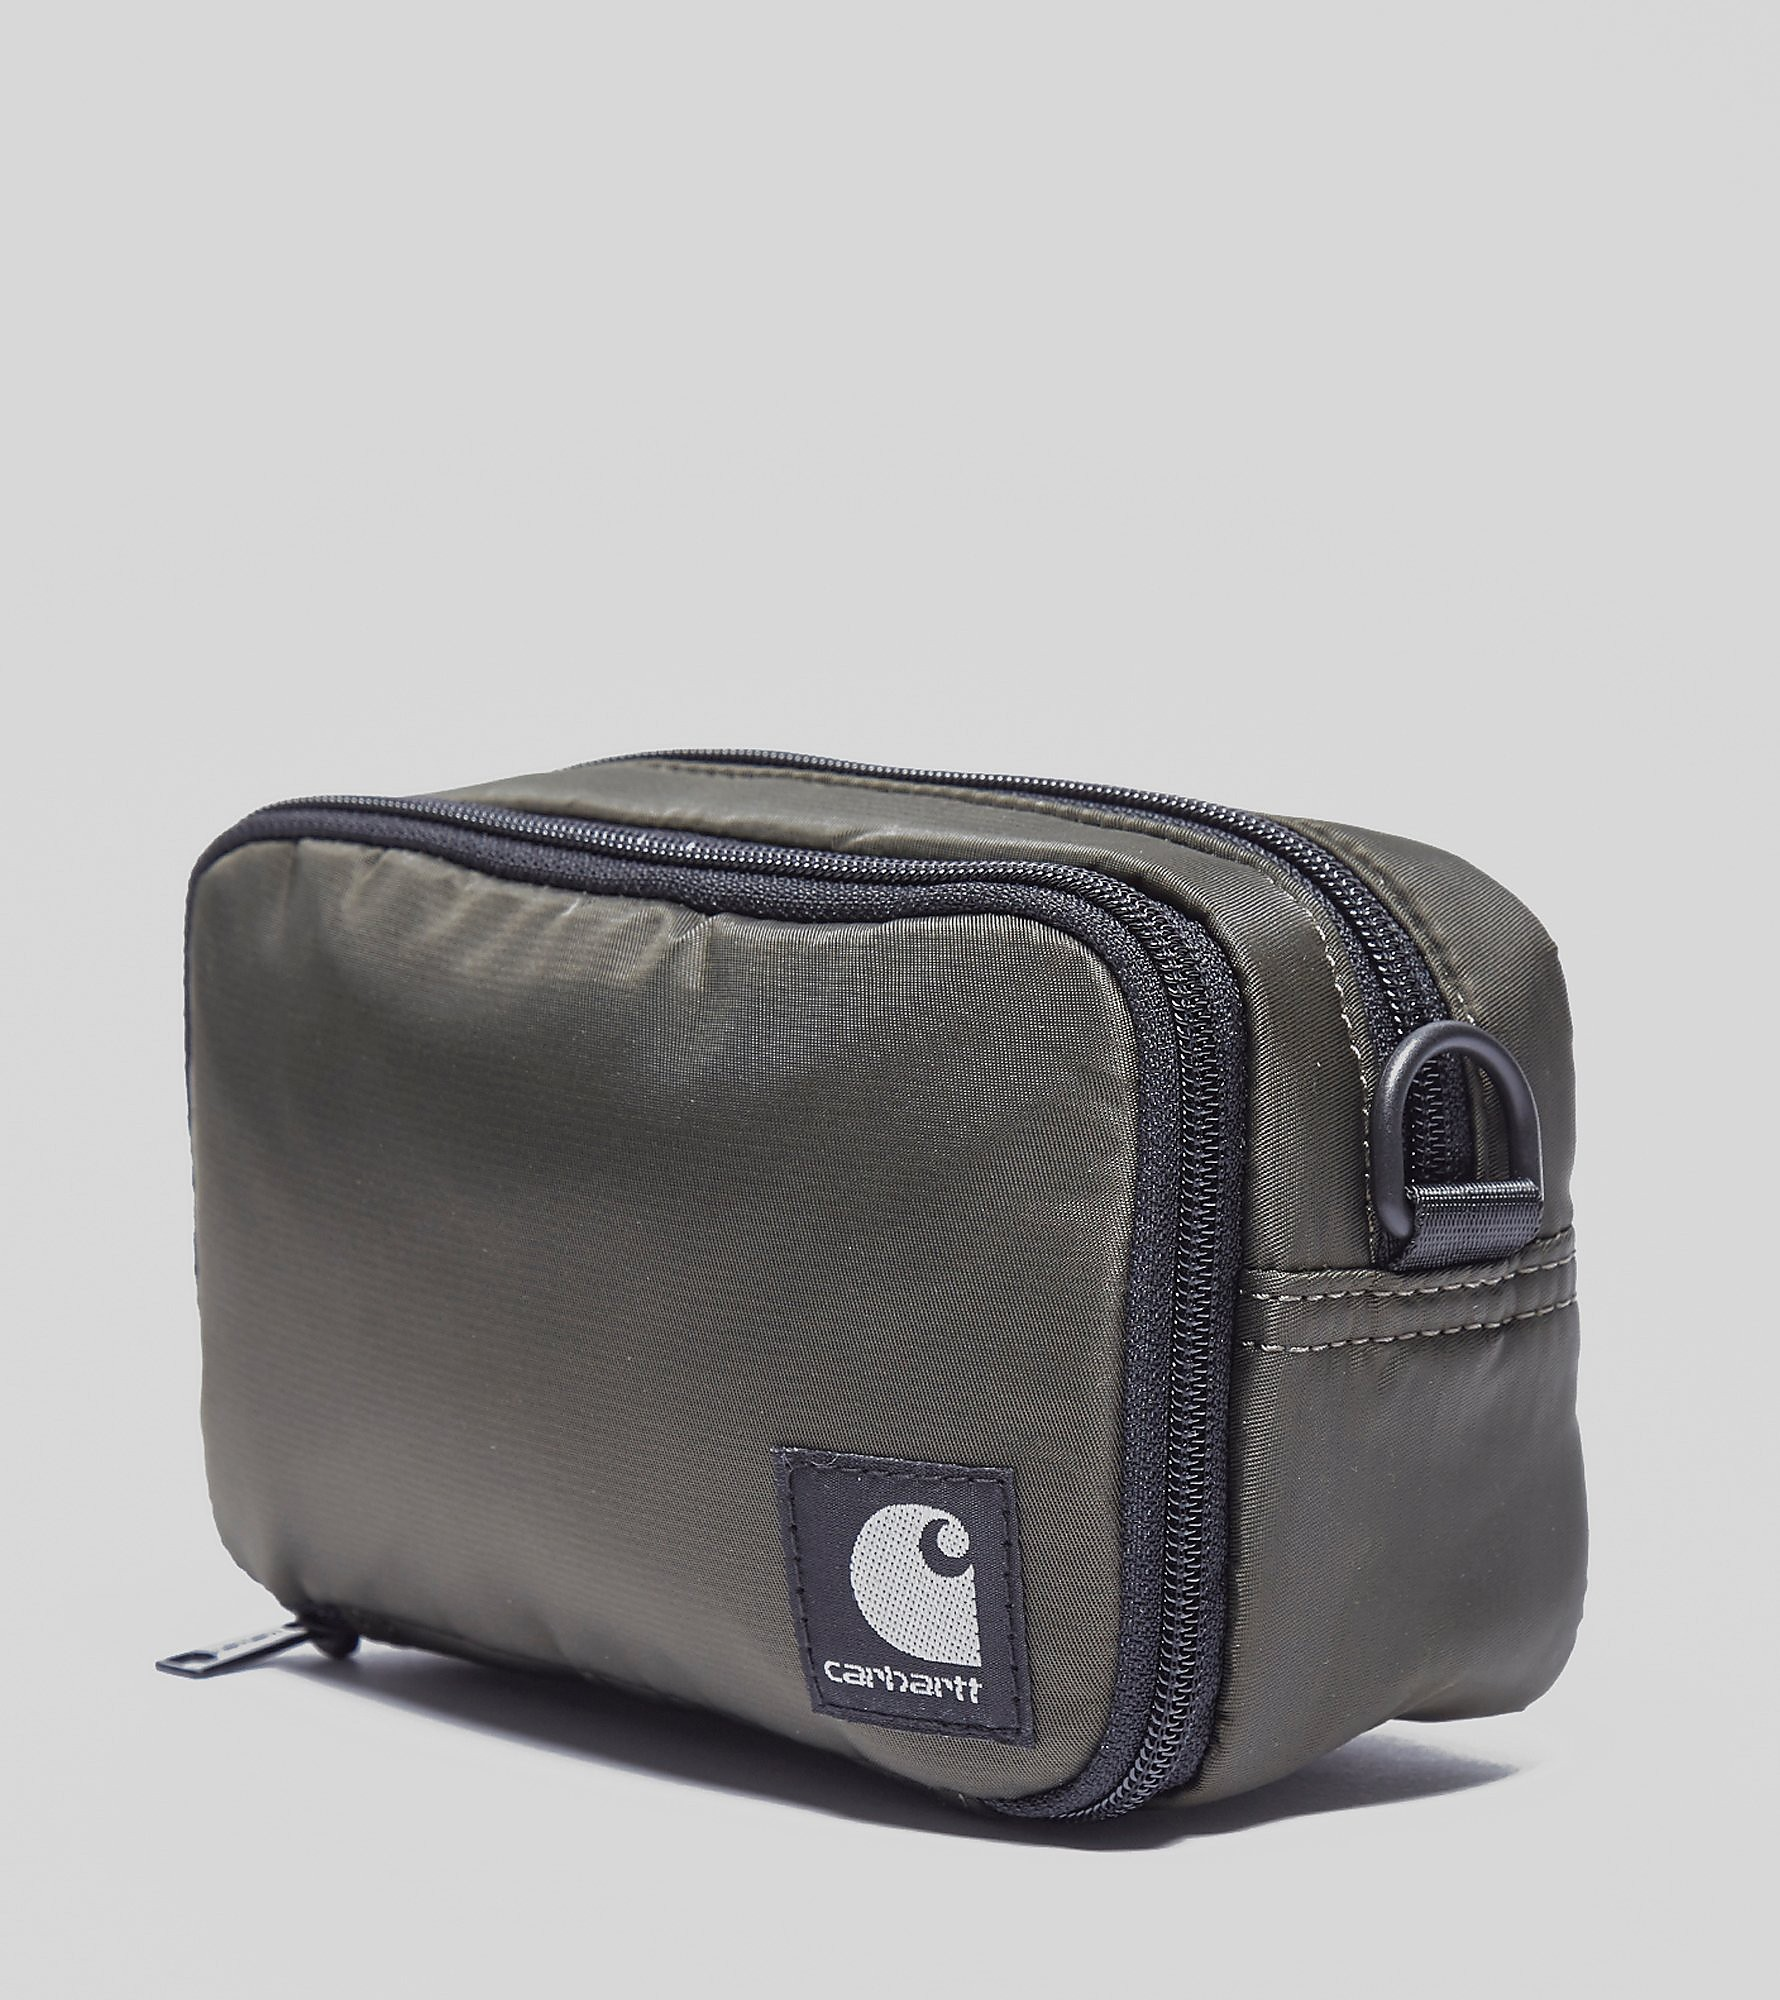 Carhartt Hunter Travel Case